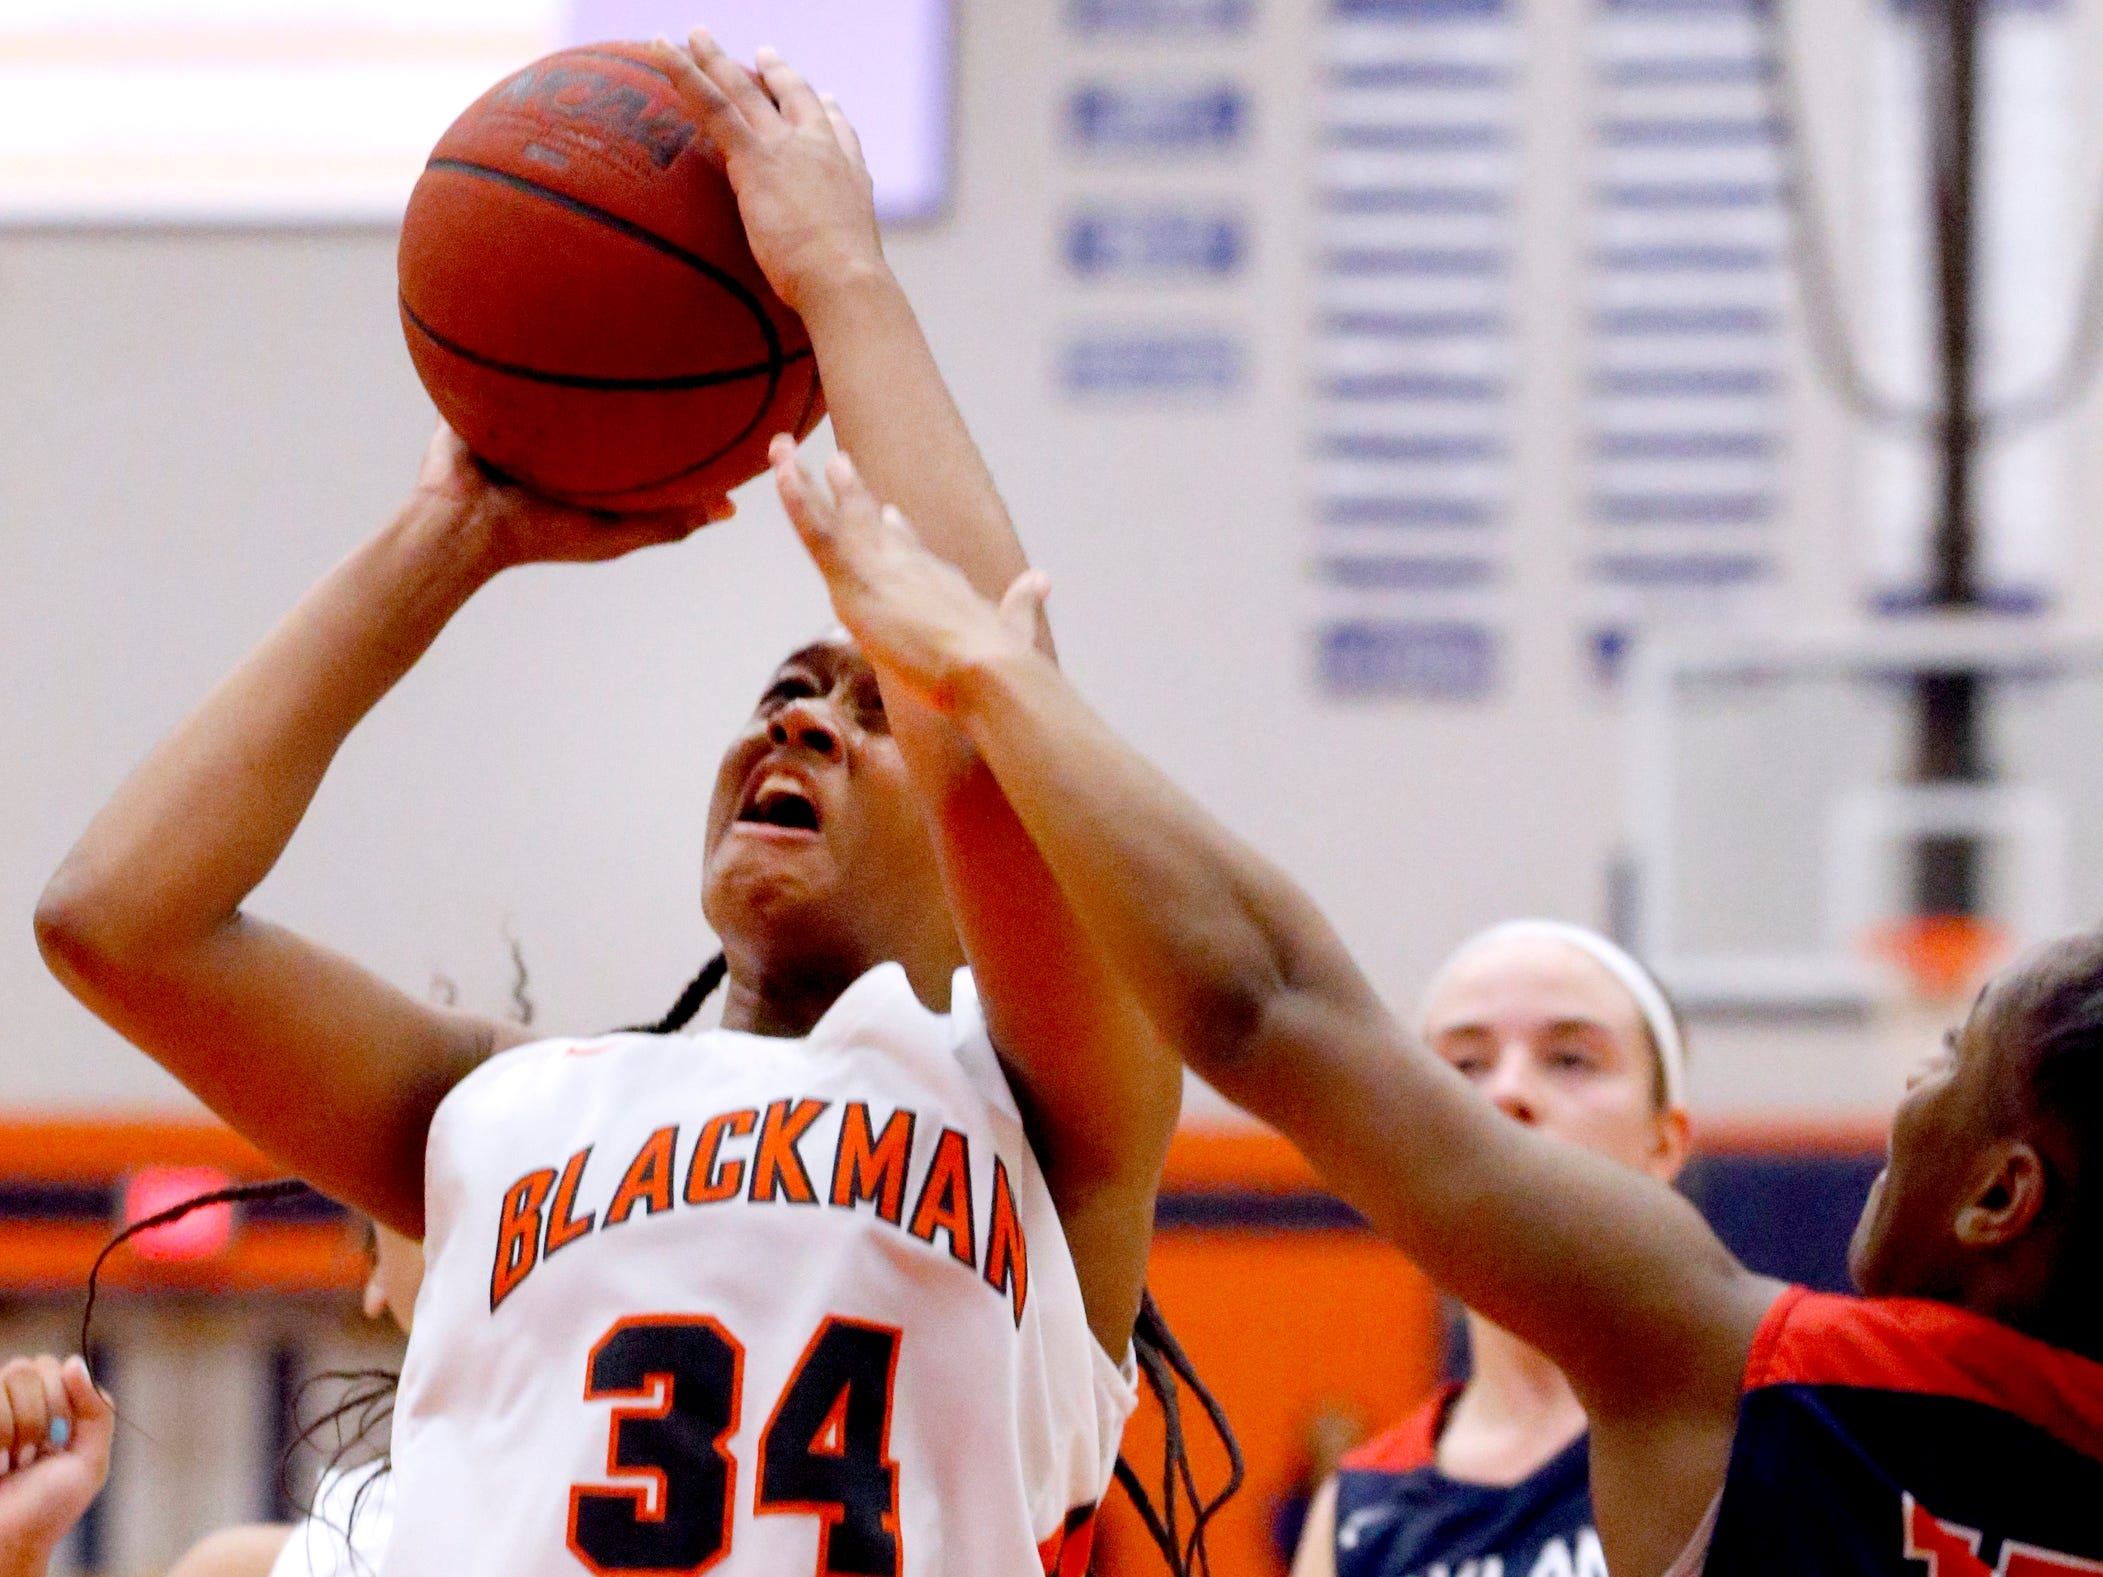 Blackman's Geegee Hollingsworth (34) goes up for a shot as Oakland's Dakoria Puckett (10) guards her during the game against Oakland on Friday, Feb. 8, 2019.